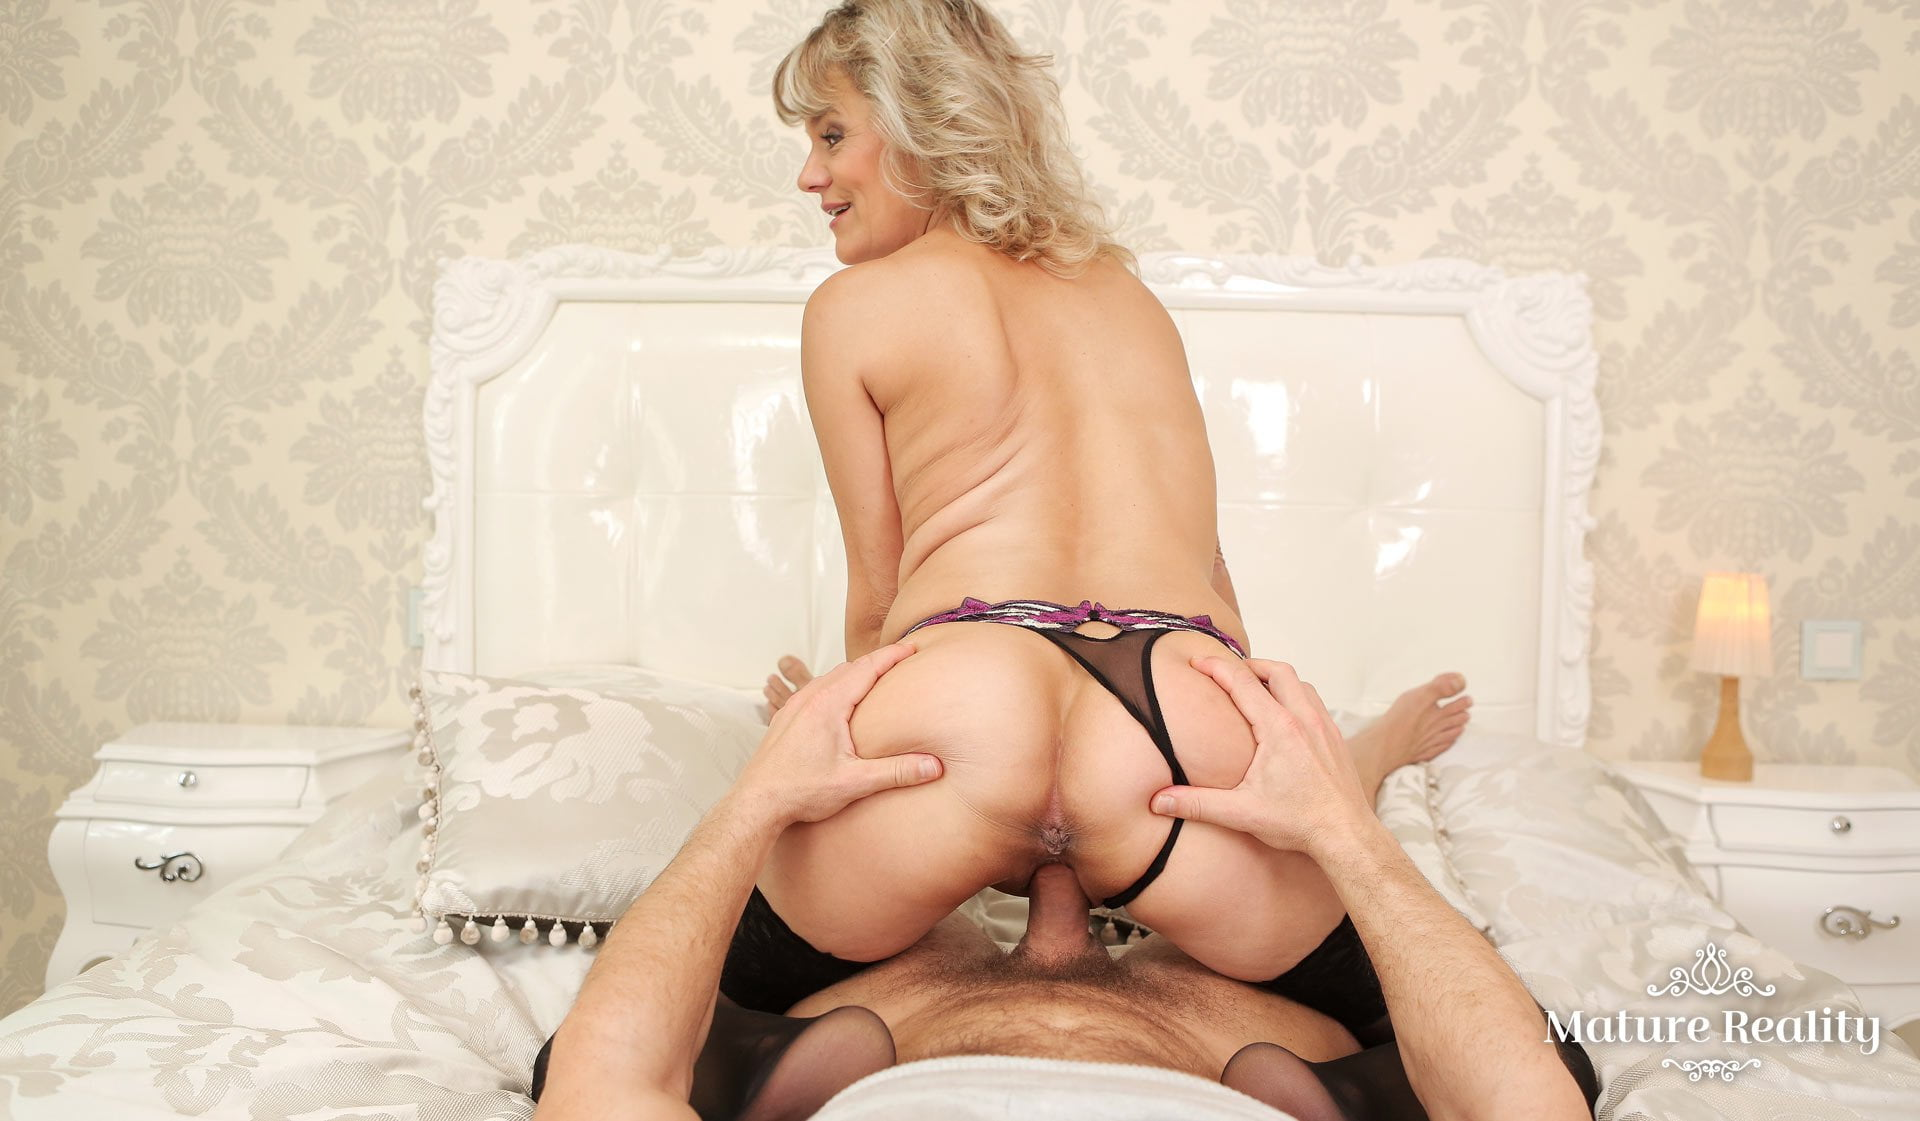 College Blonde Reverse Cowgirl